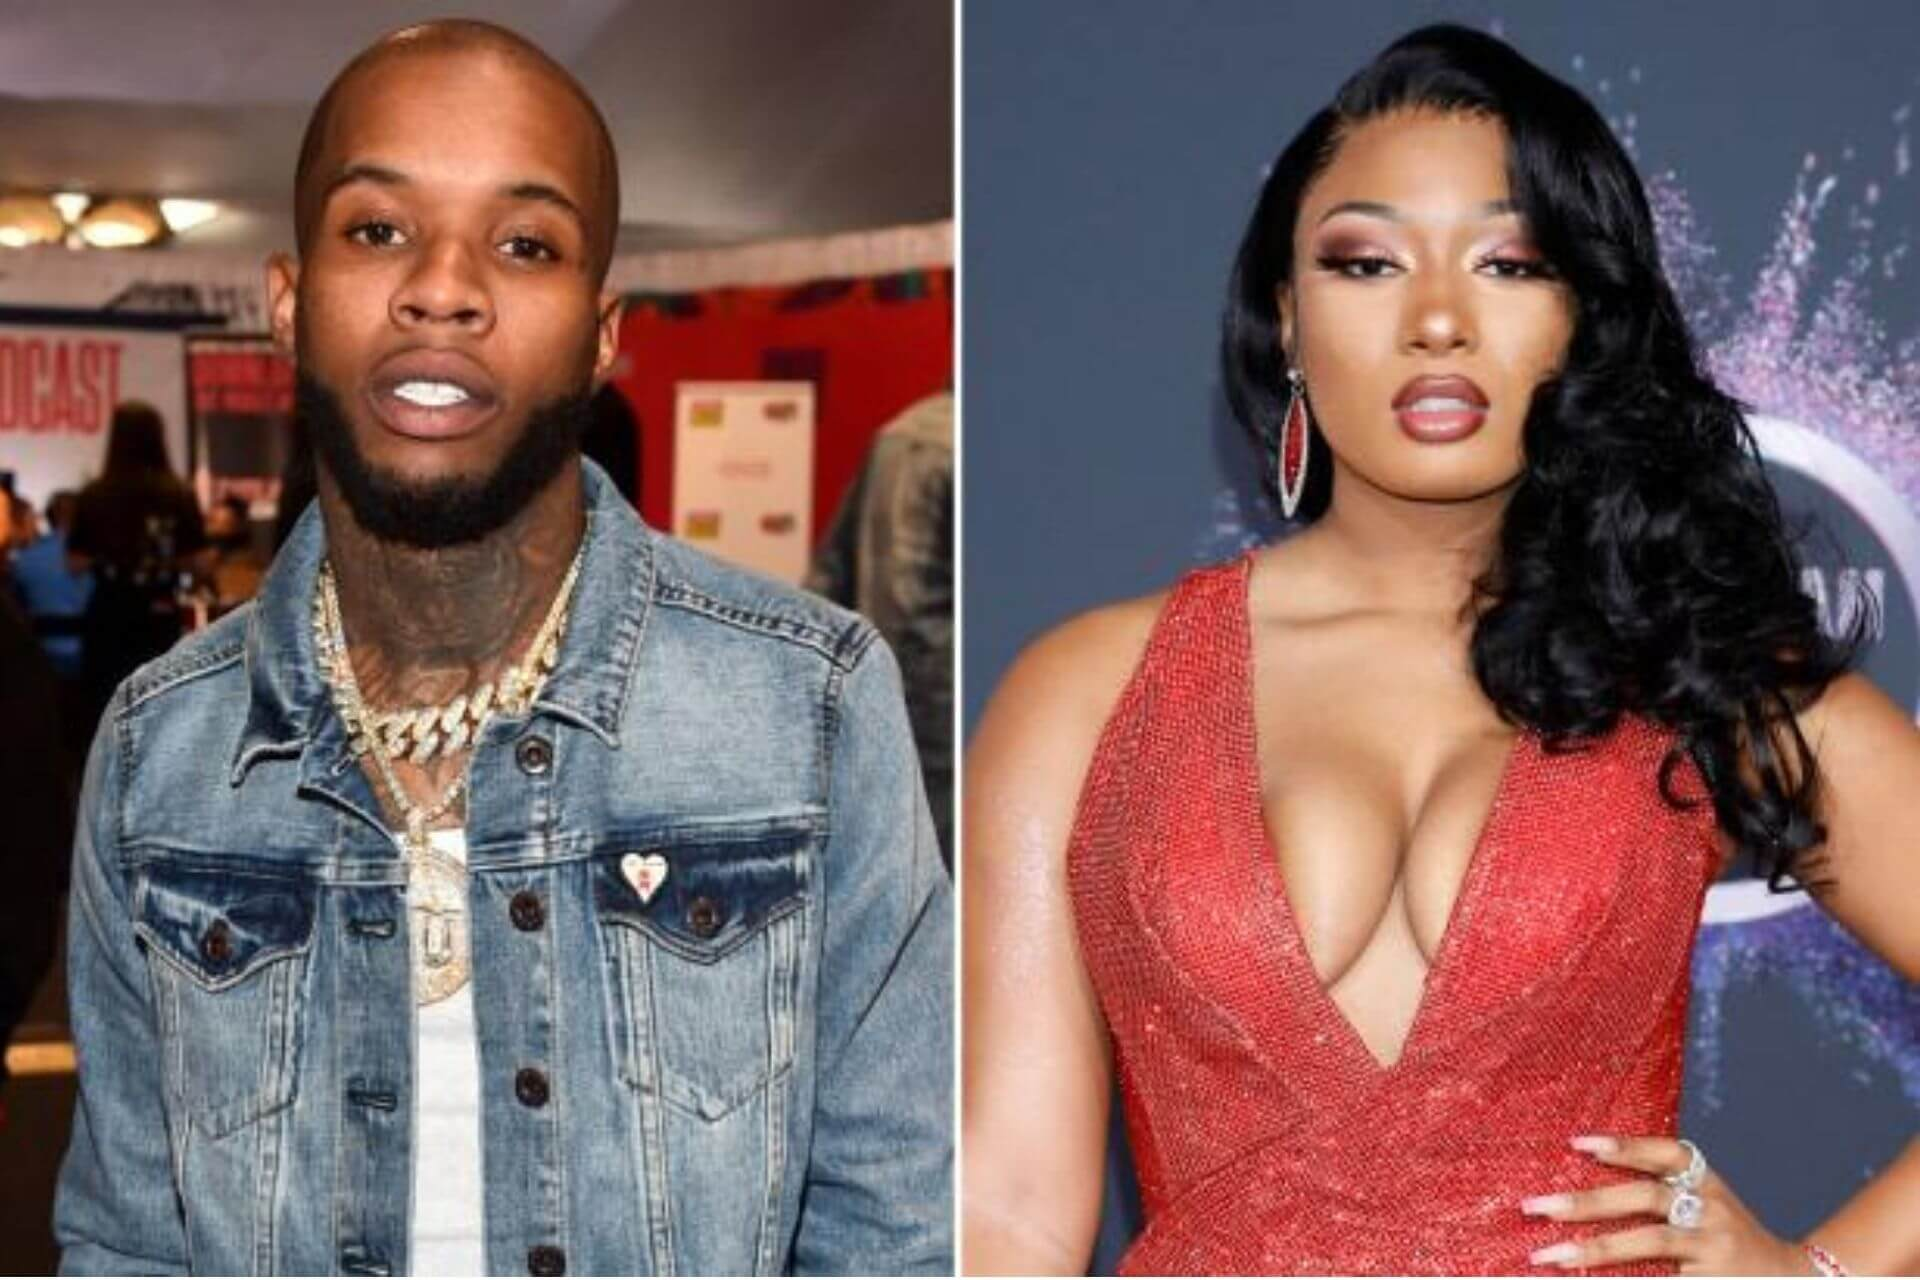 LA police considering assault charge against Tory Lanez over Megan Thee Stallion shooting